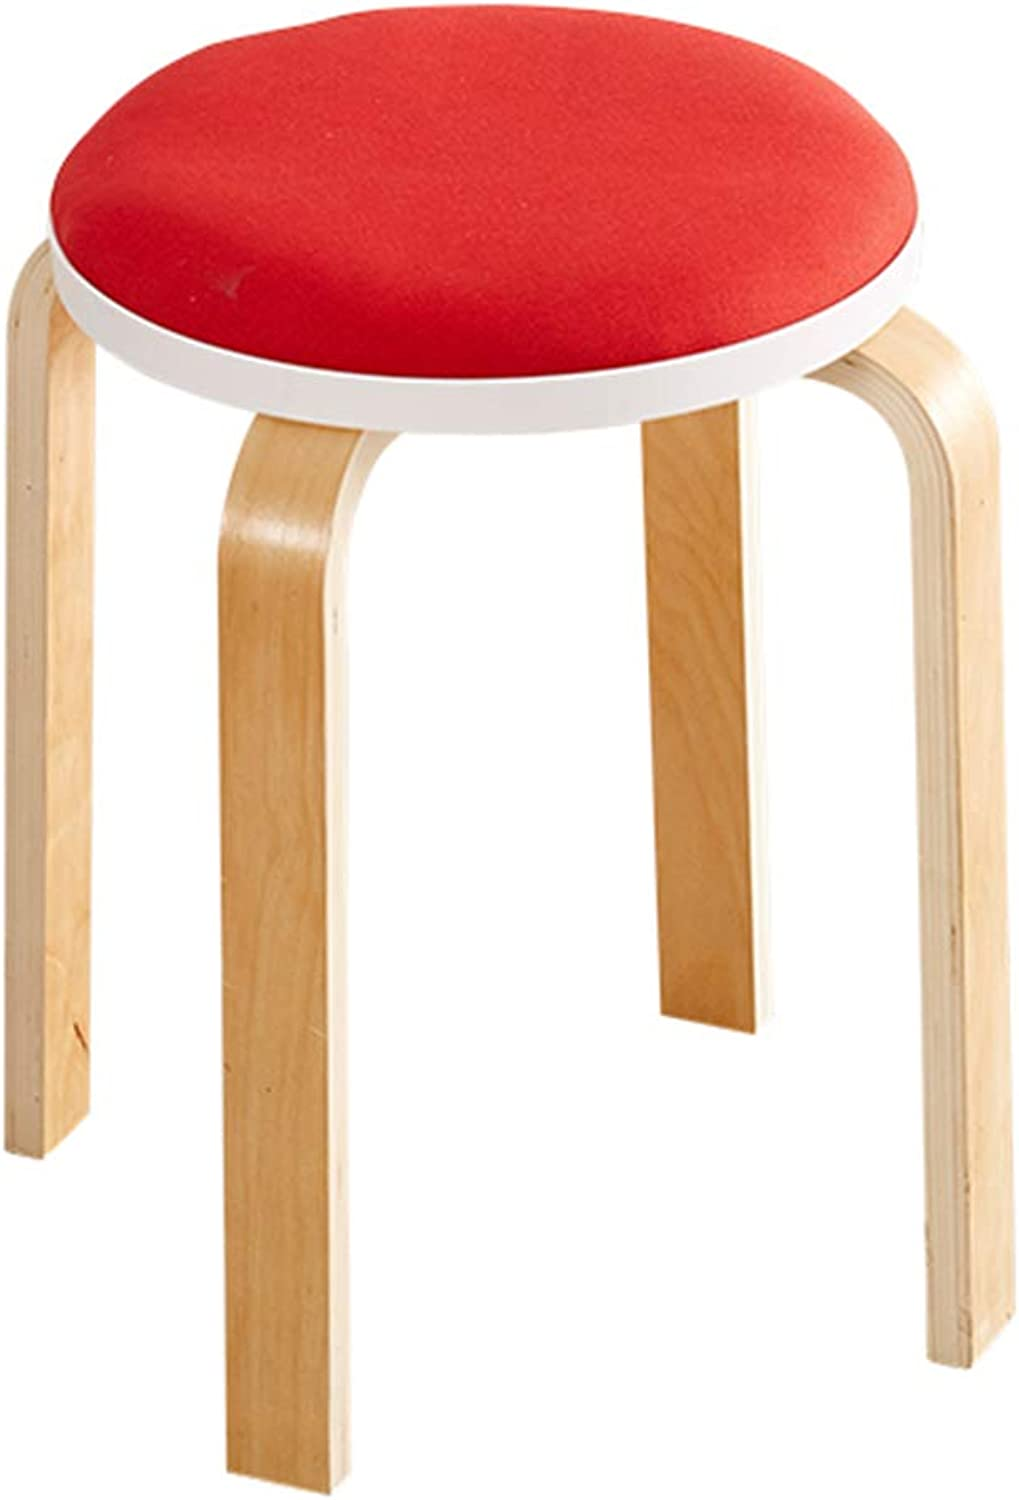 Stools Stools Solid Wood Stools Environmental Predection Reinforced Anti-Slip Stools Fashion Creative Living Room Home Stools (color   Red, Size   45  32  32cm)